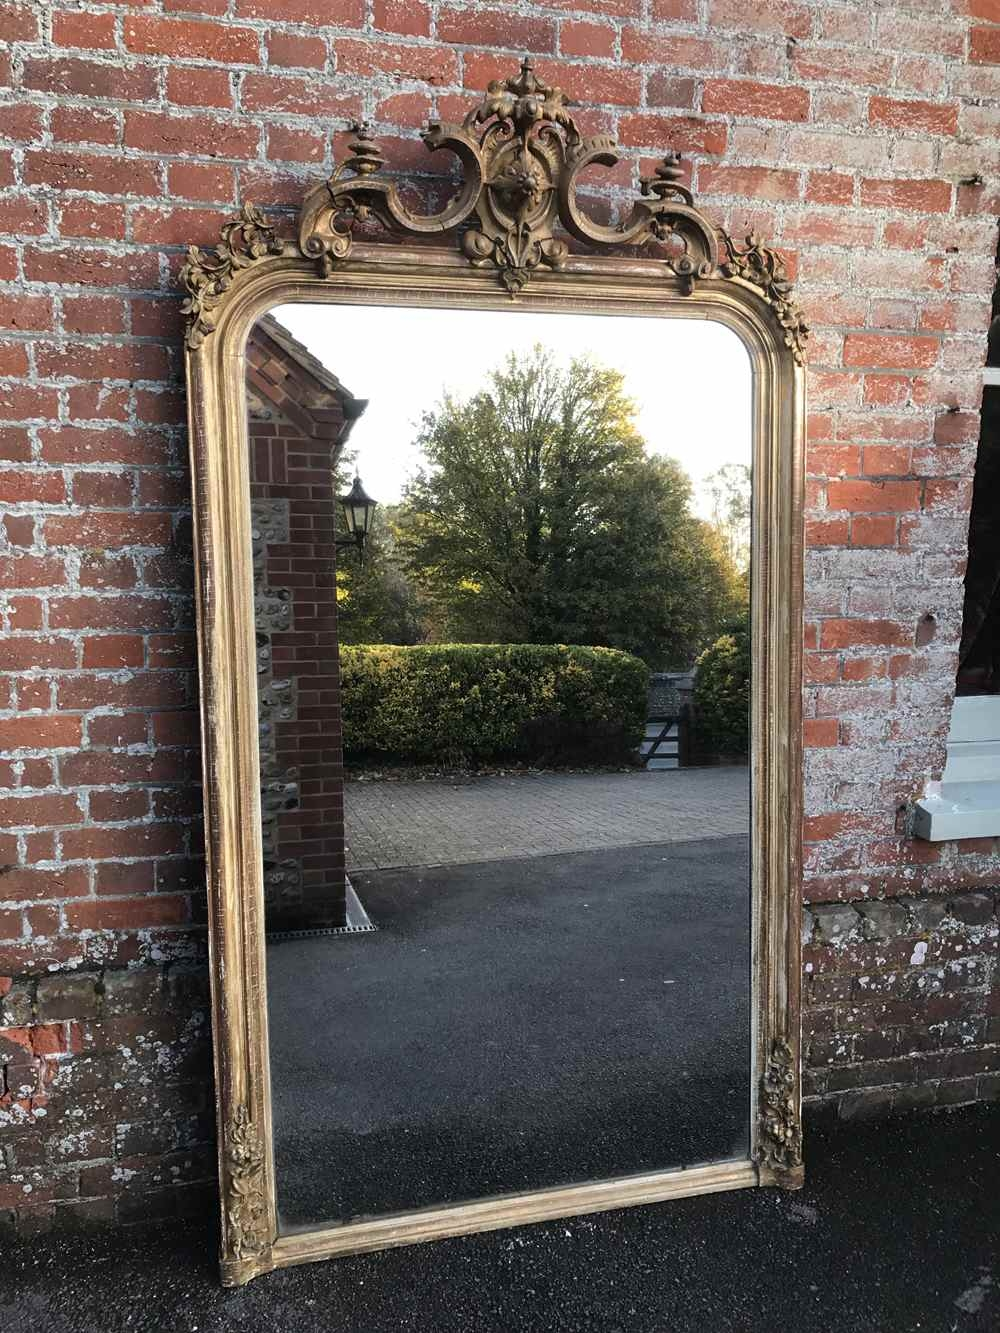 A Spectacular Large Antique 19th Century French Carved Wood And Regarding Antique Large Mirror (Image 2 of 15)